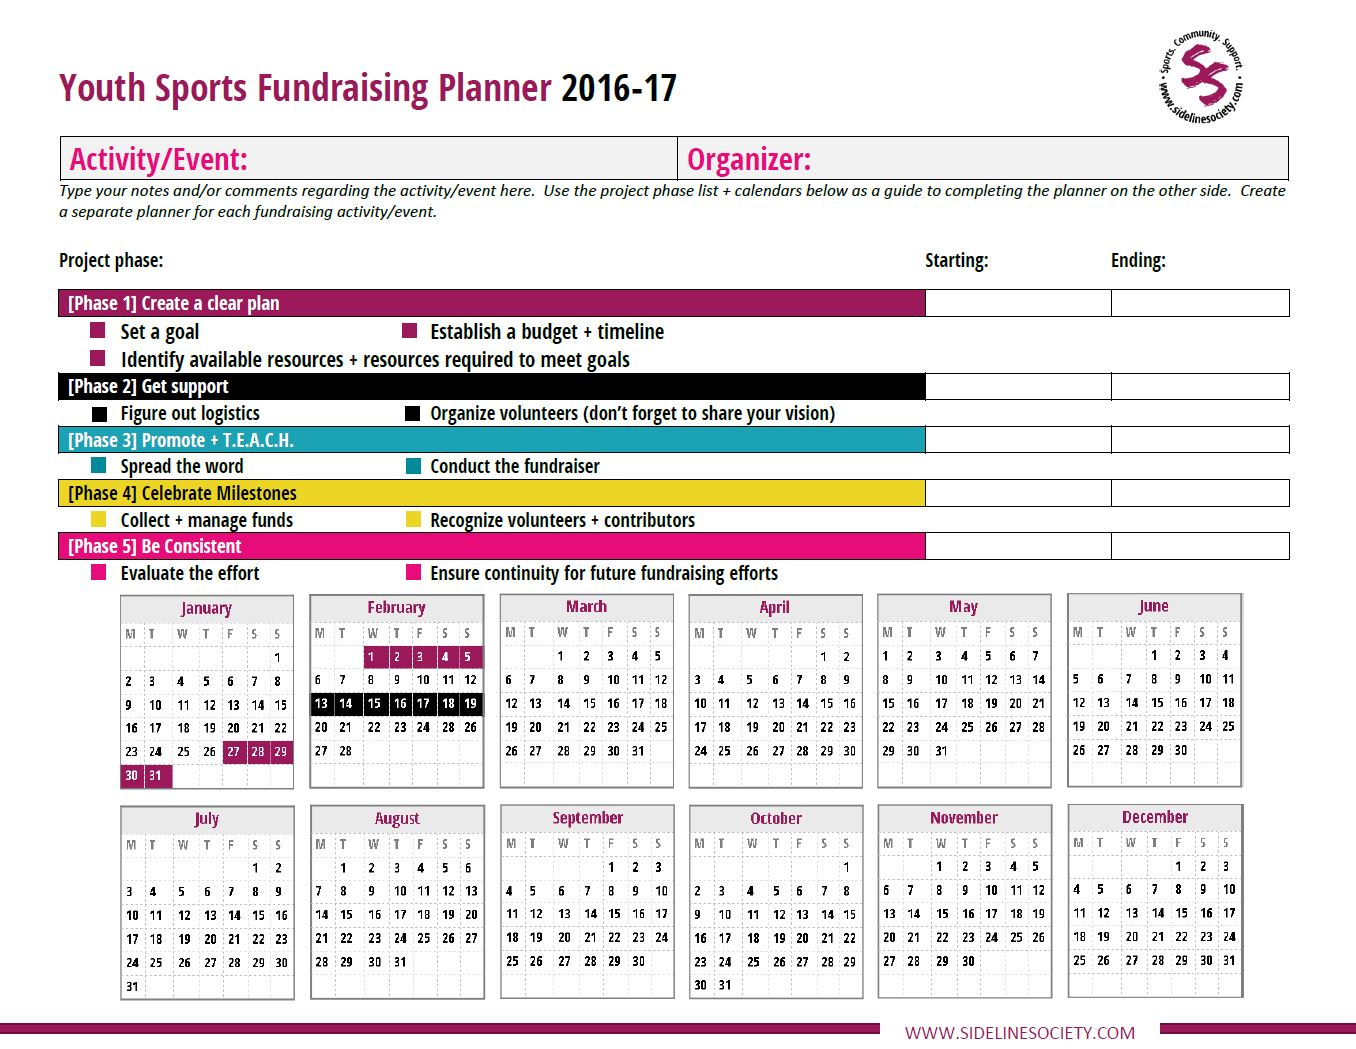 Youth Sports Fundraising Planner 2016-17